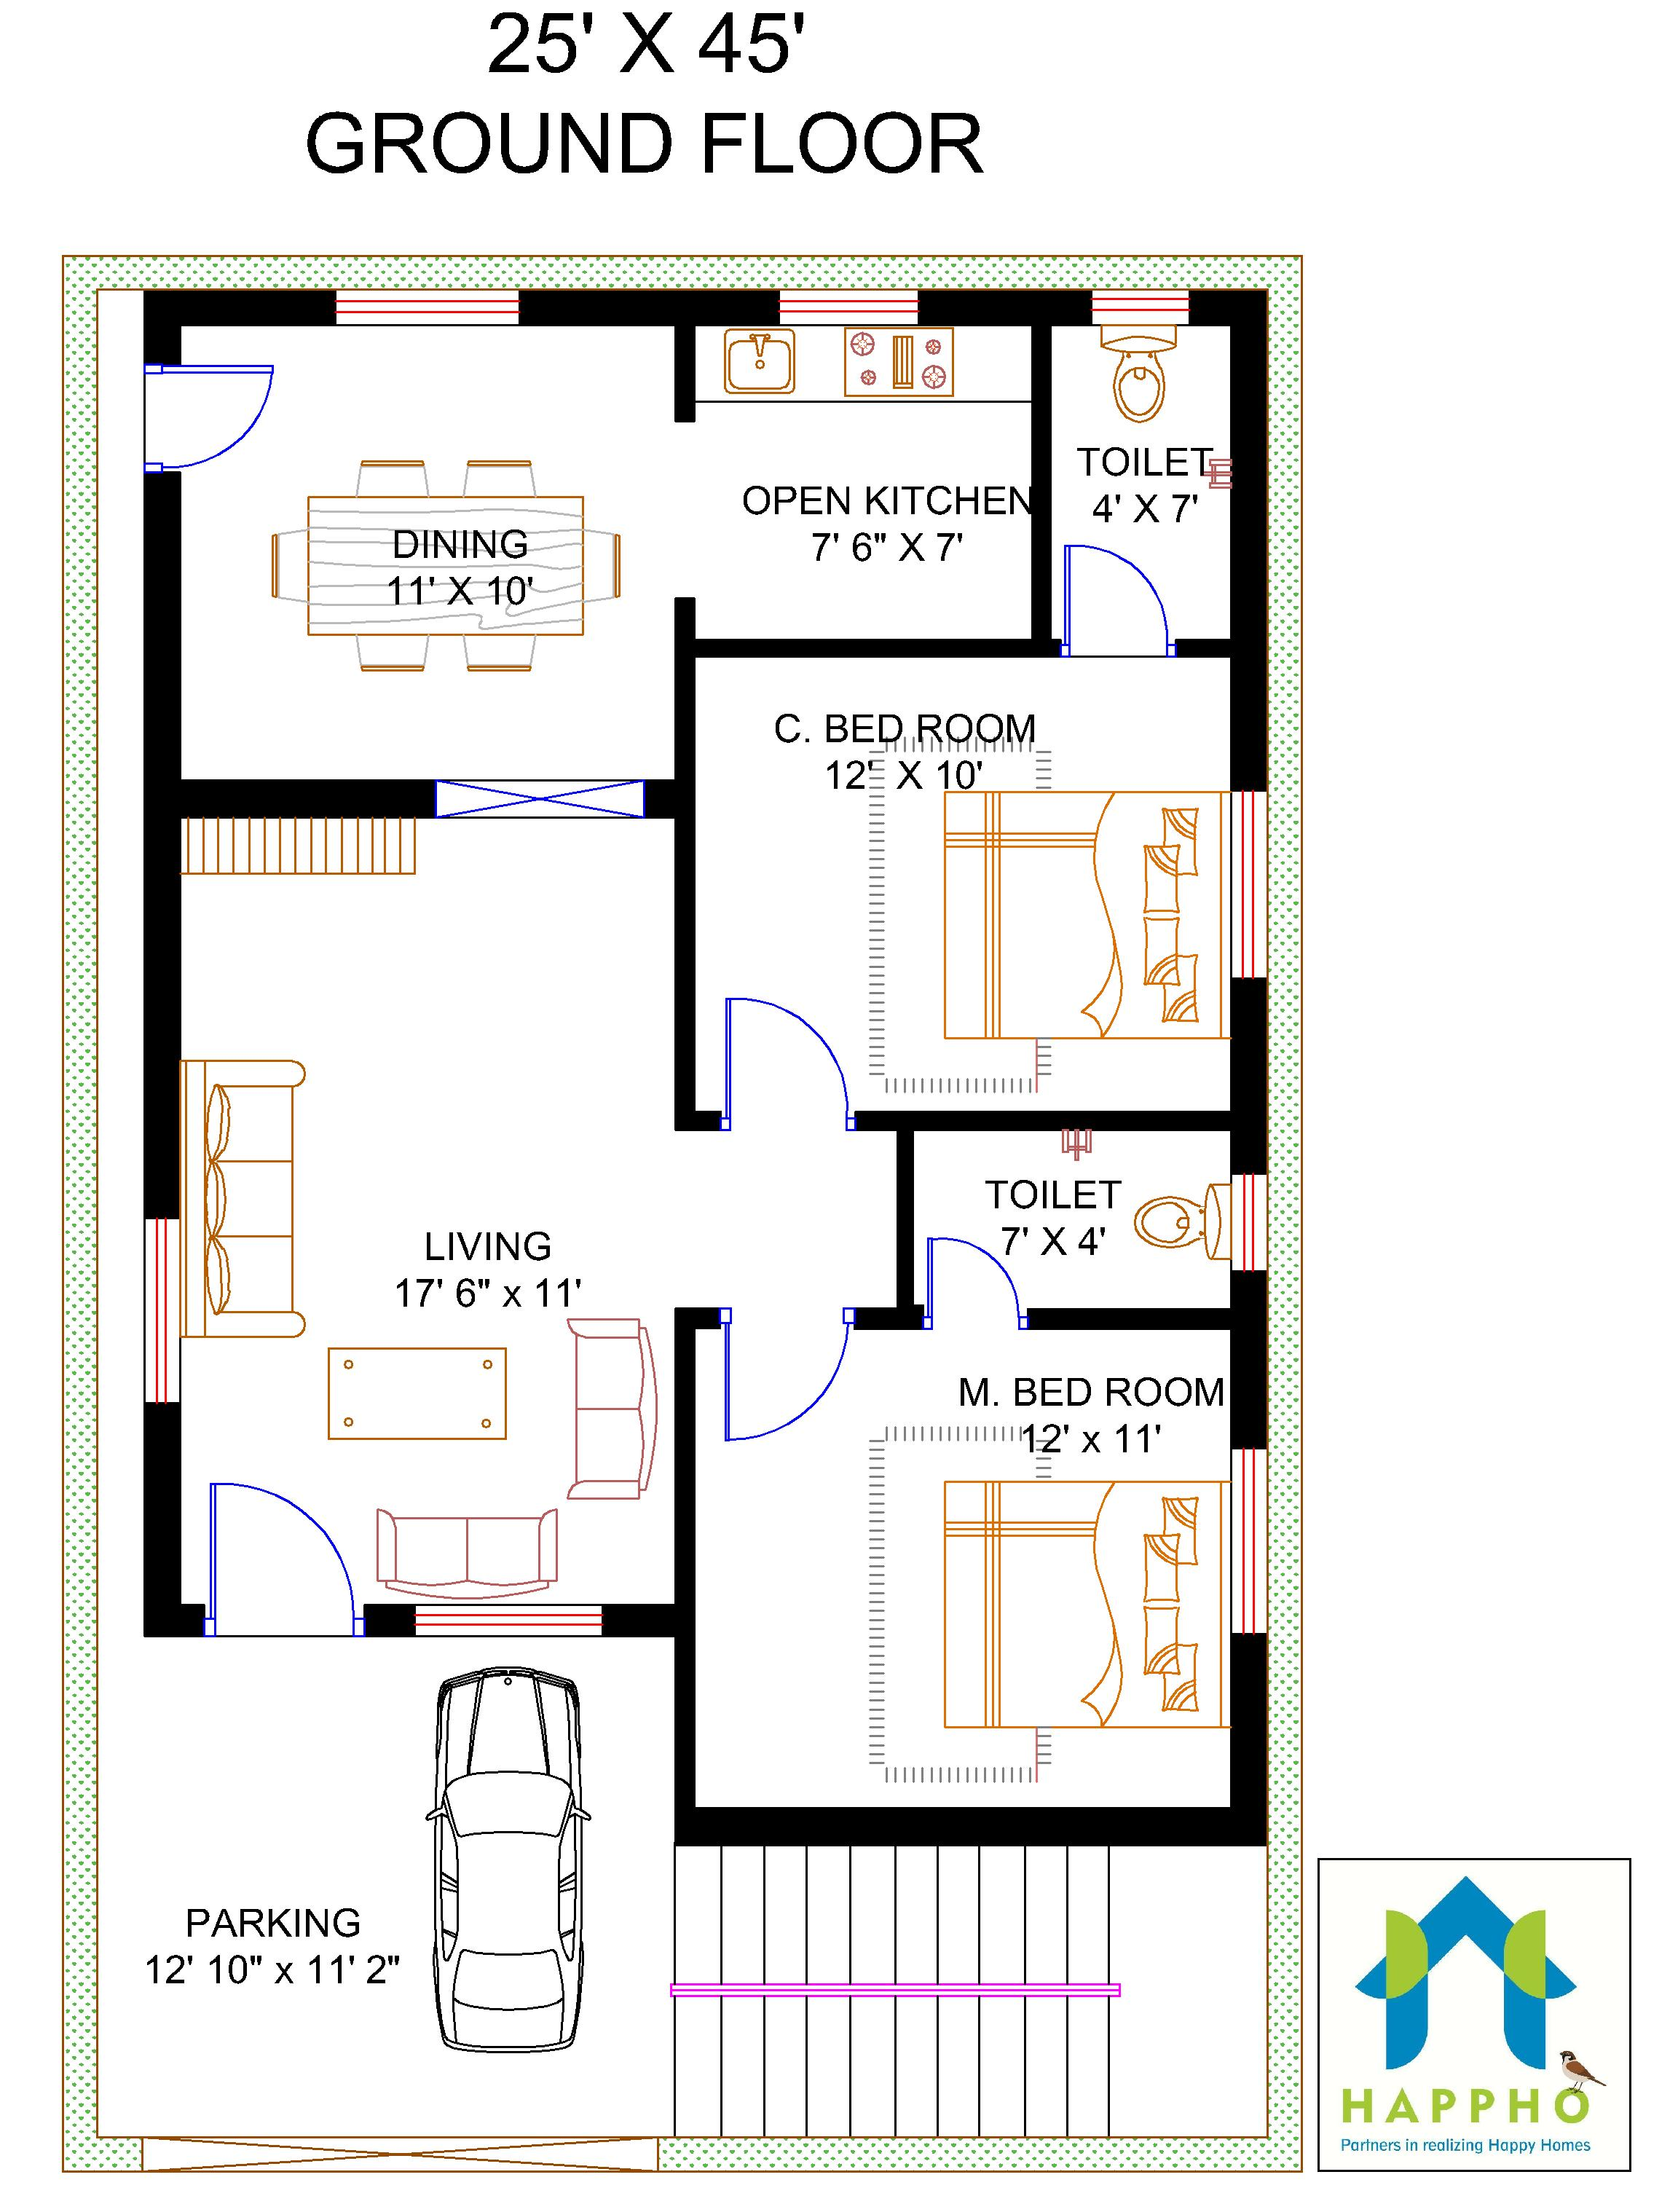 20 X 40 2bhk Plan West Face Explain In Hindi Floor Plan For 25 X 45 Feet Plot | 2-bhk (1125 Square Feet